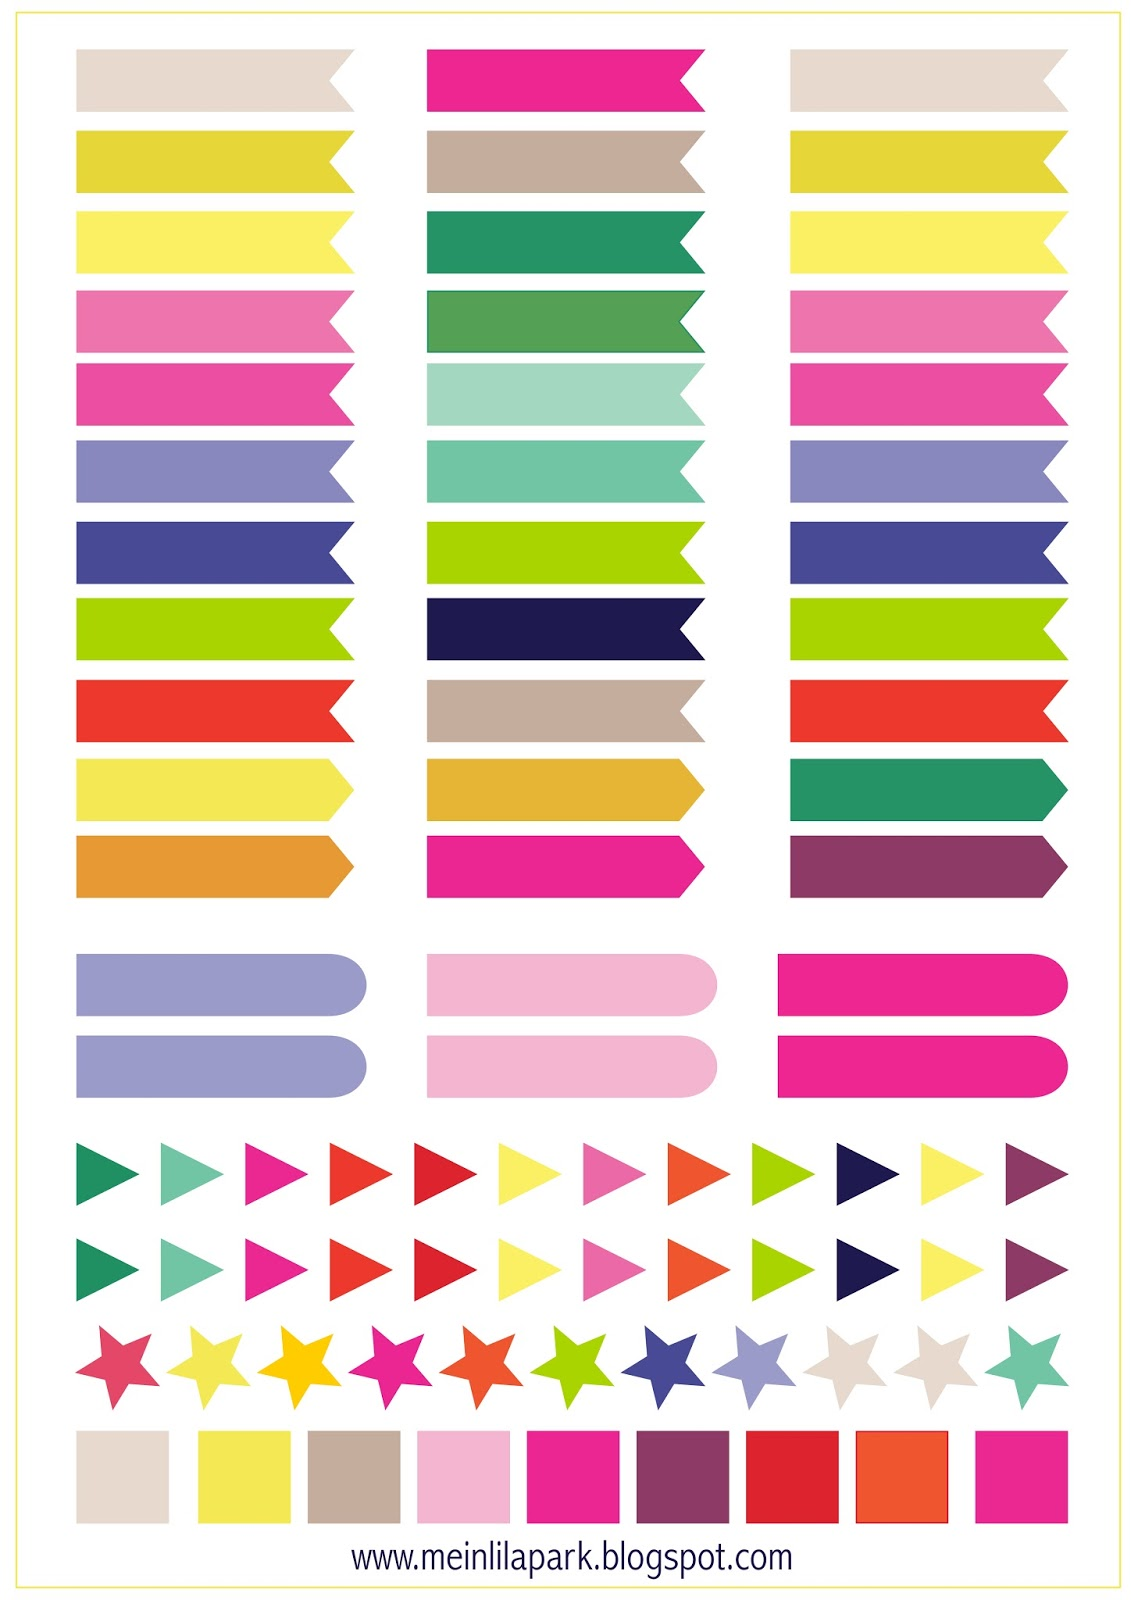 Free printable calendar planner flags and markers - ausdruckbare ...